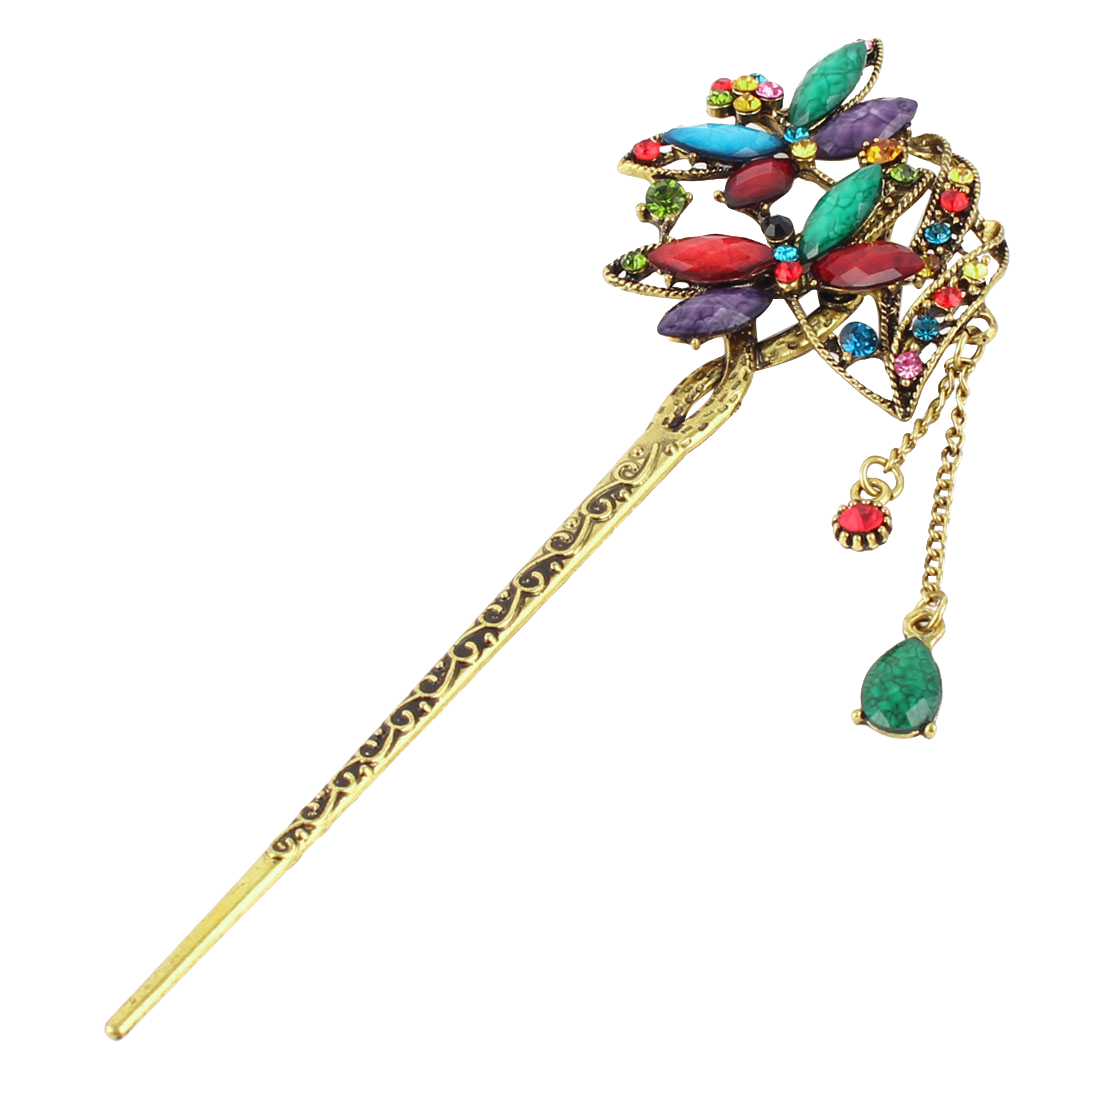 Lady Metal Vintage Dragonfly Decor Tassels Rhinestone Adorn Hair Pin Colorful